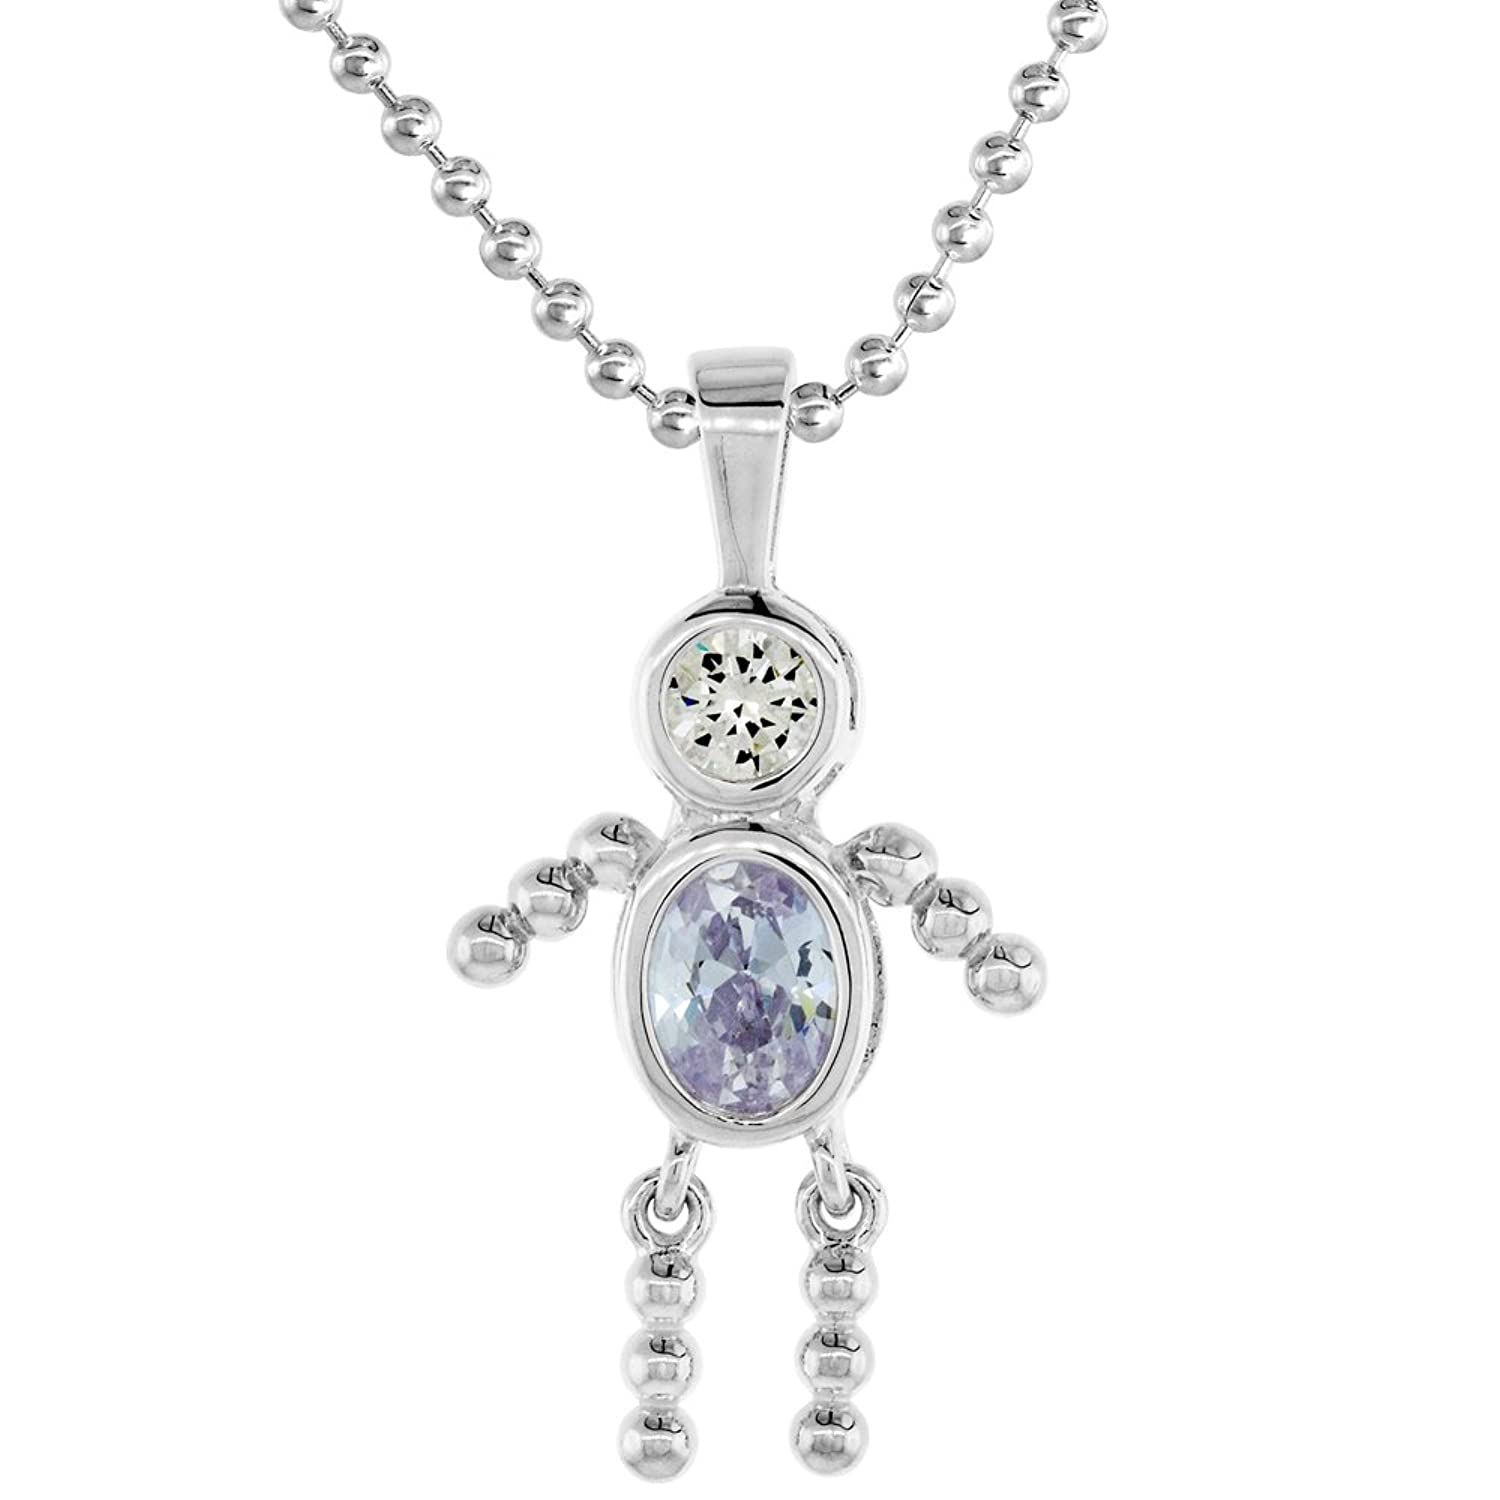 rose necklace shop pendants names res june silver high biba birthstone jewellery